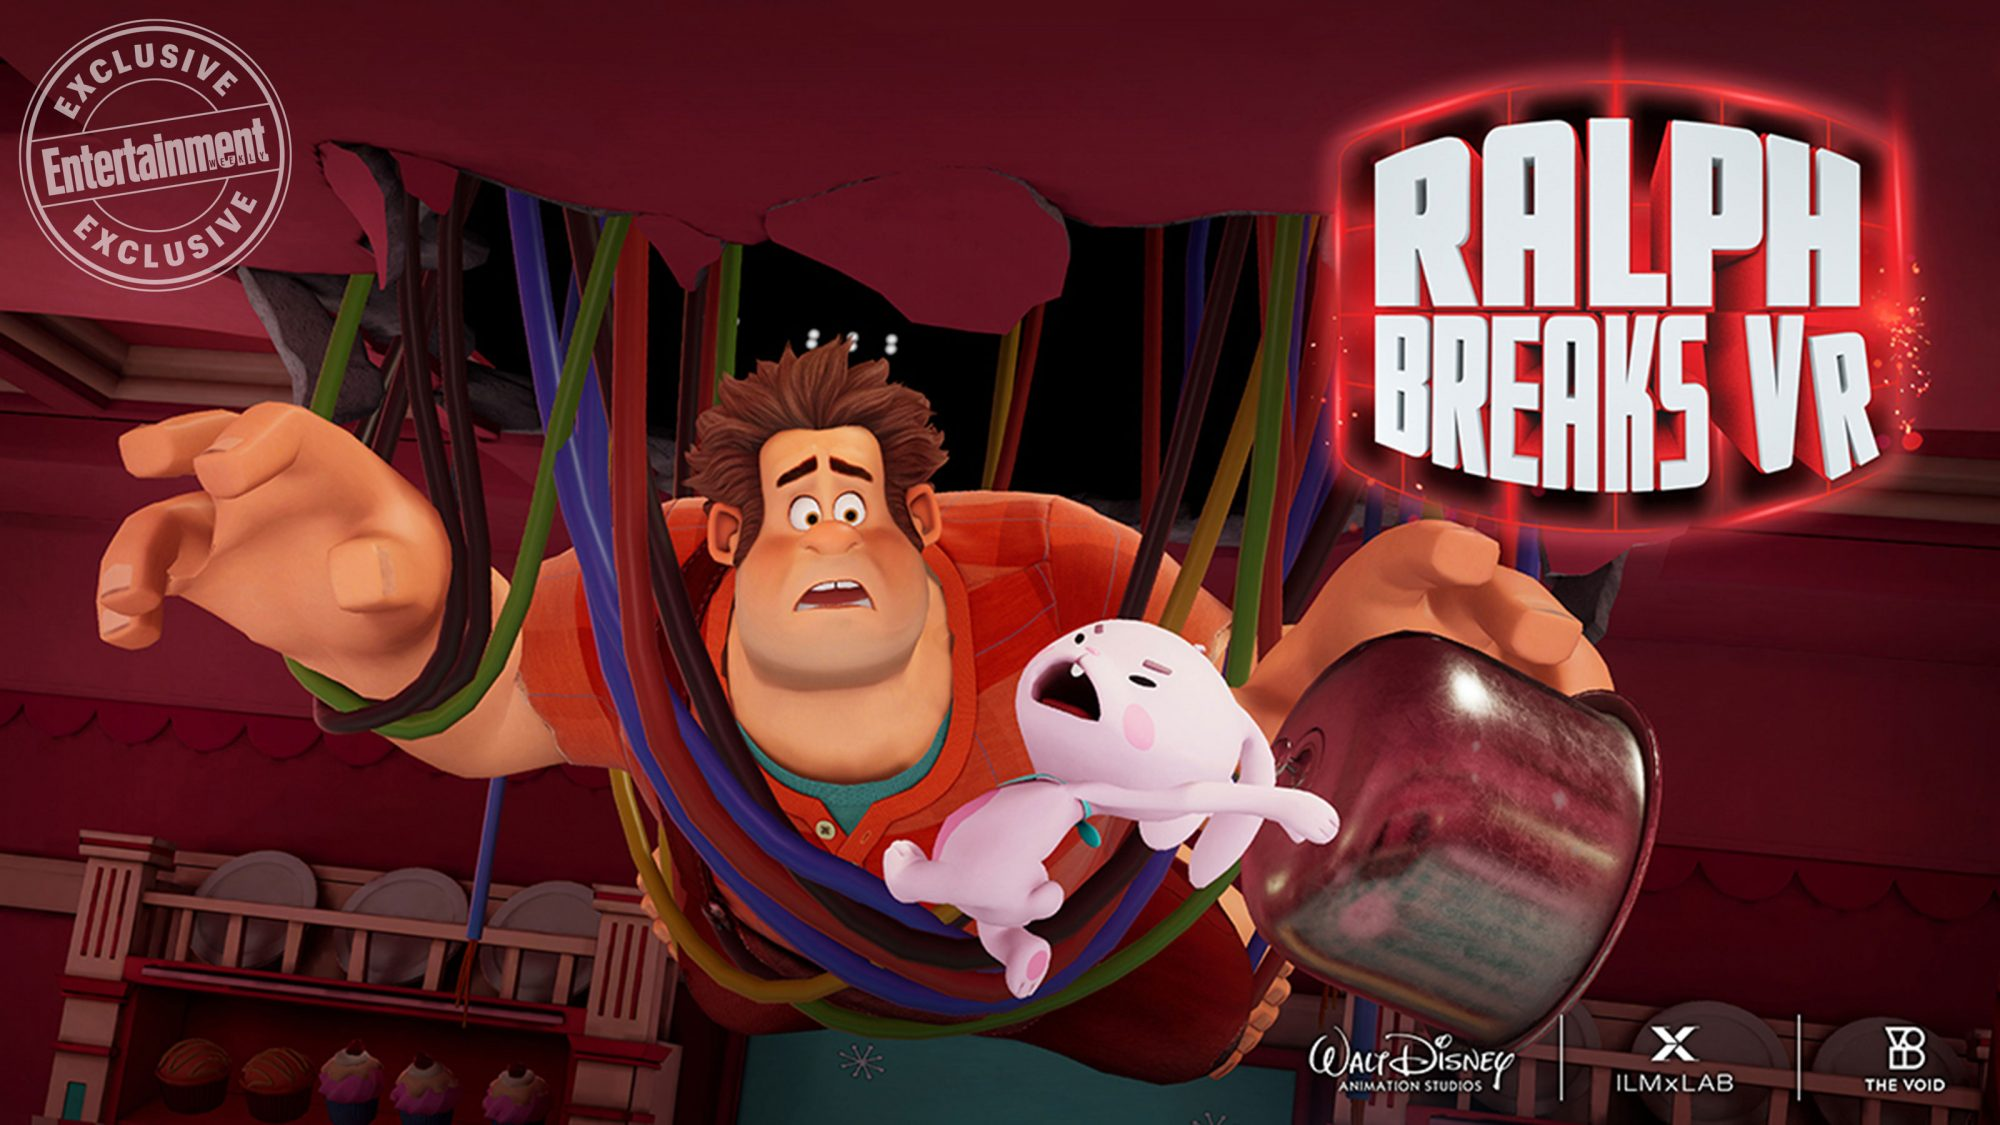 Ralph Breaks VRCR: Disney/VOID/ILMxLAB